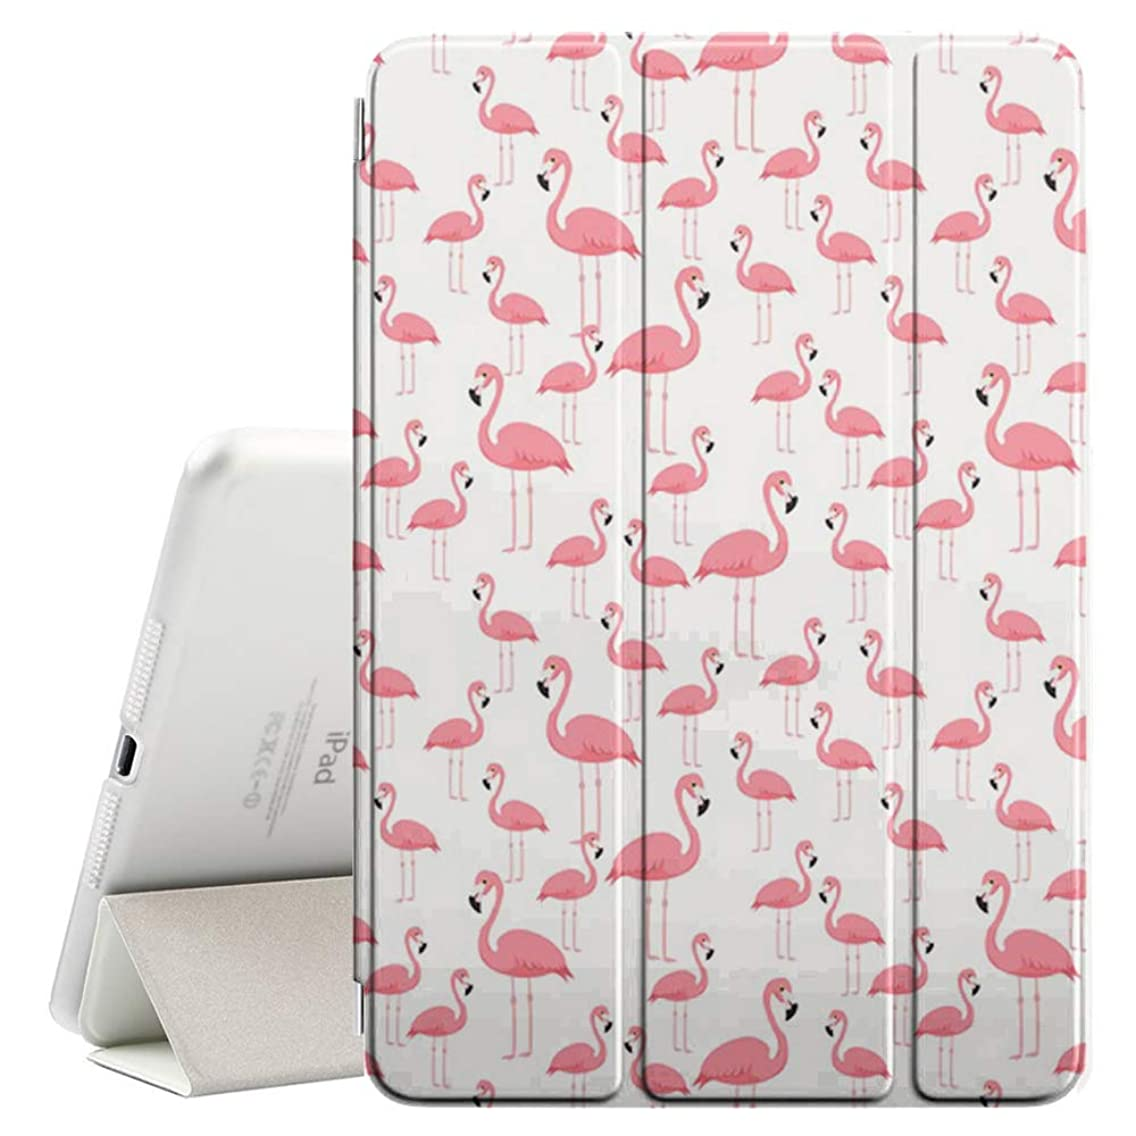 Compatible with Apple iPad Air 2 (2nd Generation) - Leather Smart Cover + Hard Back Case with Sleep/Wake Function (Pink Flamingo Beach)